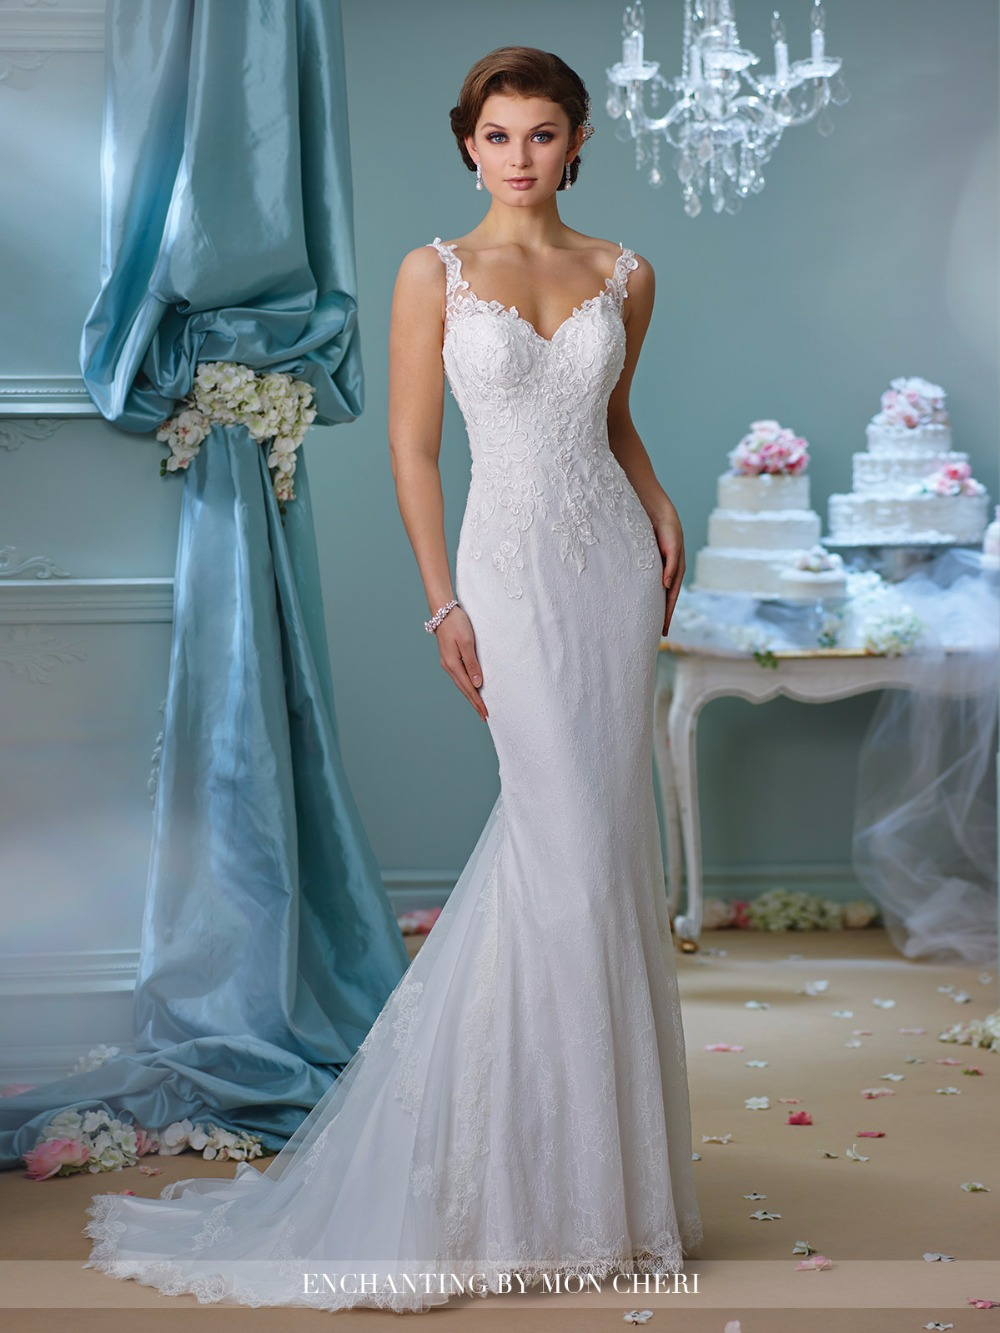 Maternity wedding dresses south africa pictures